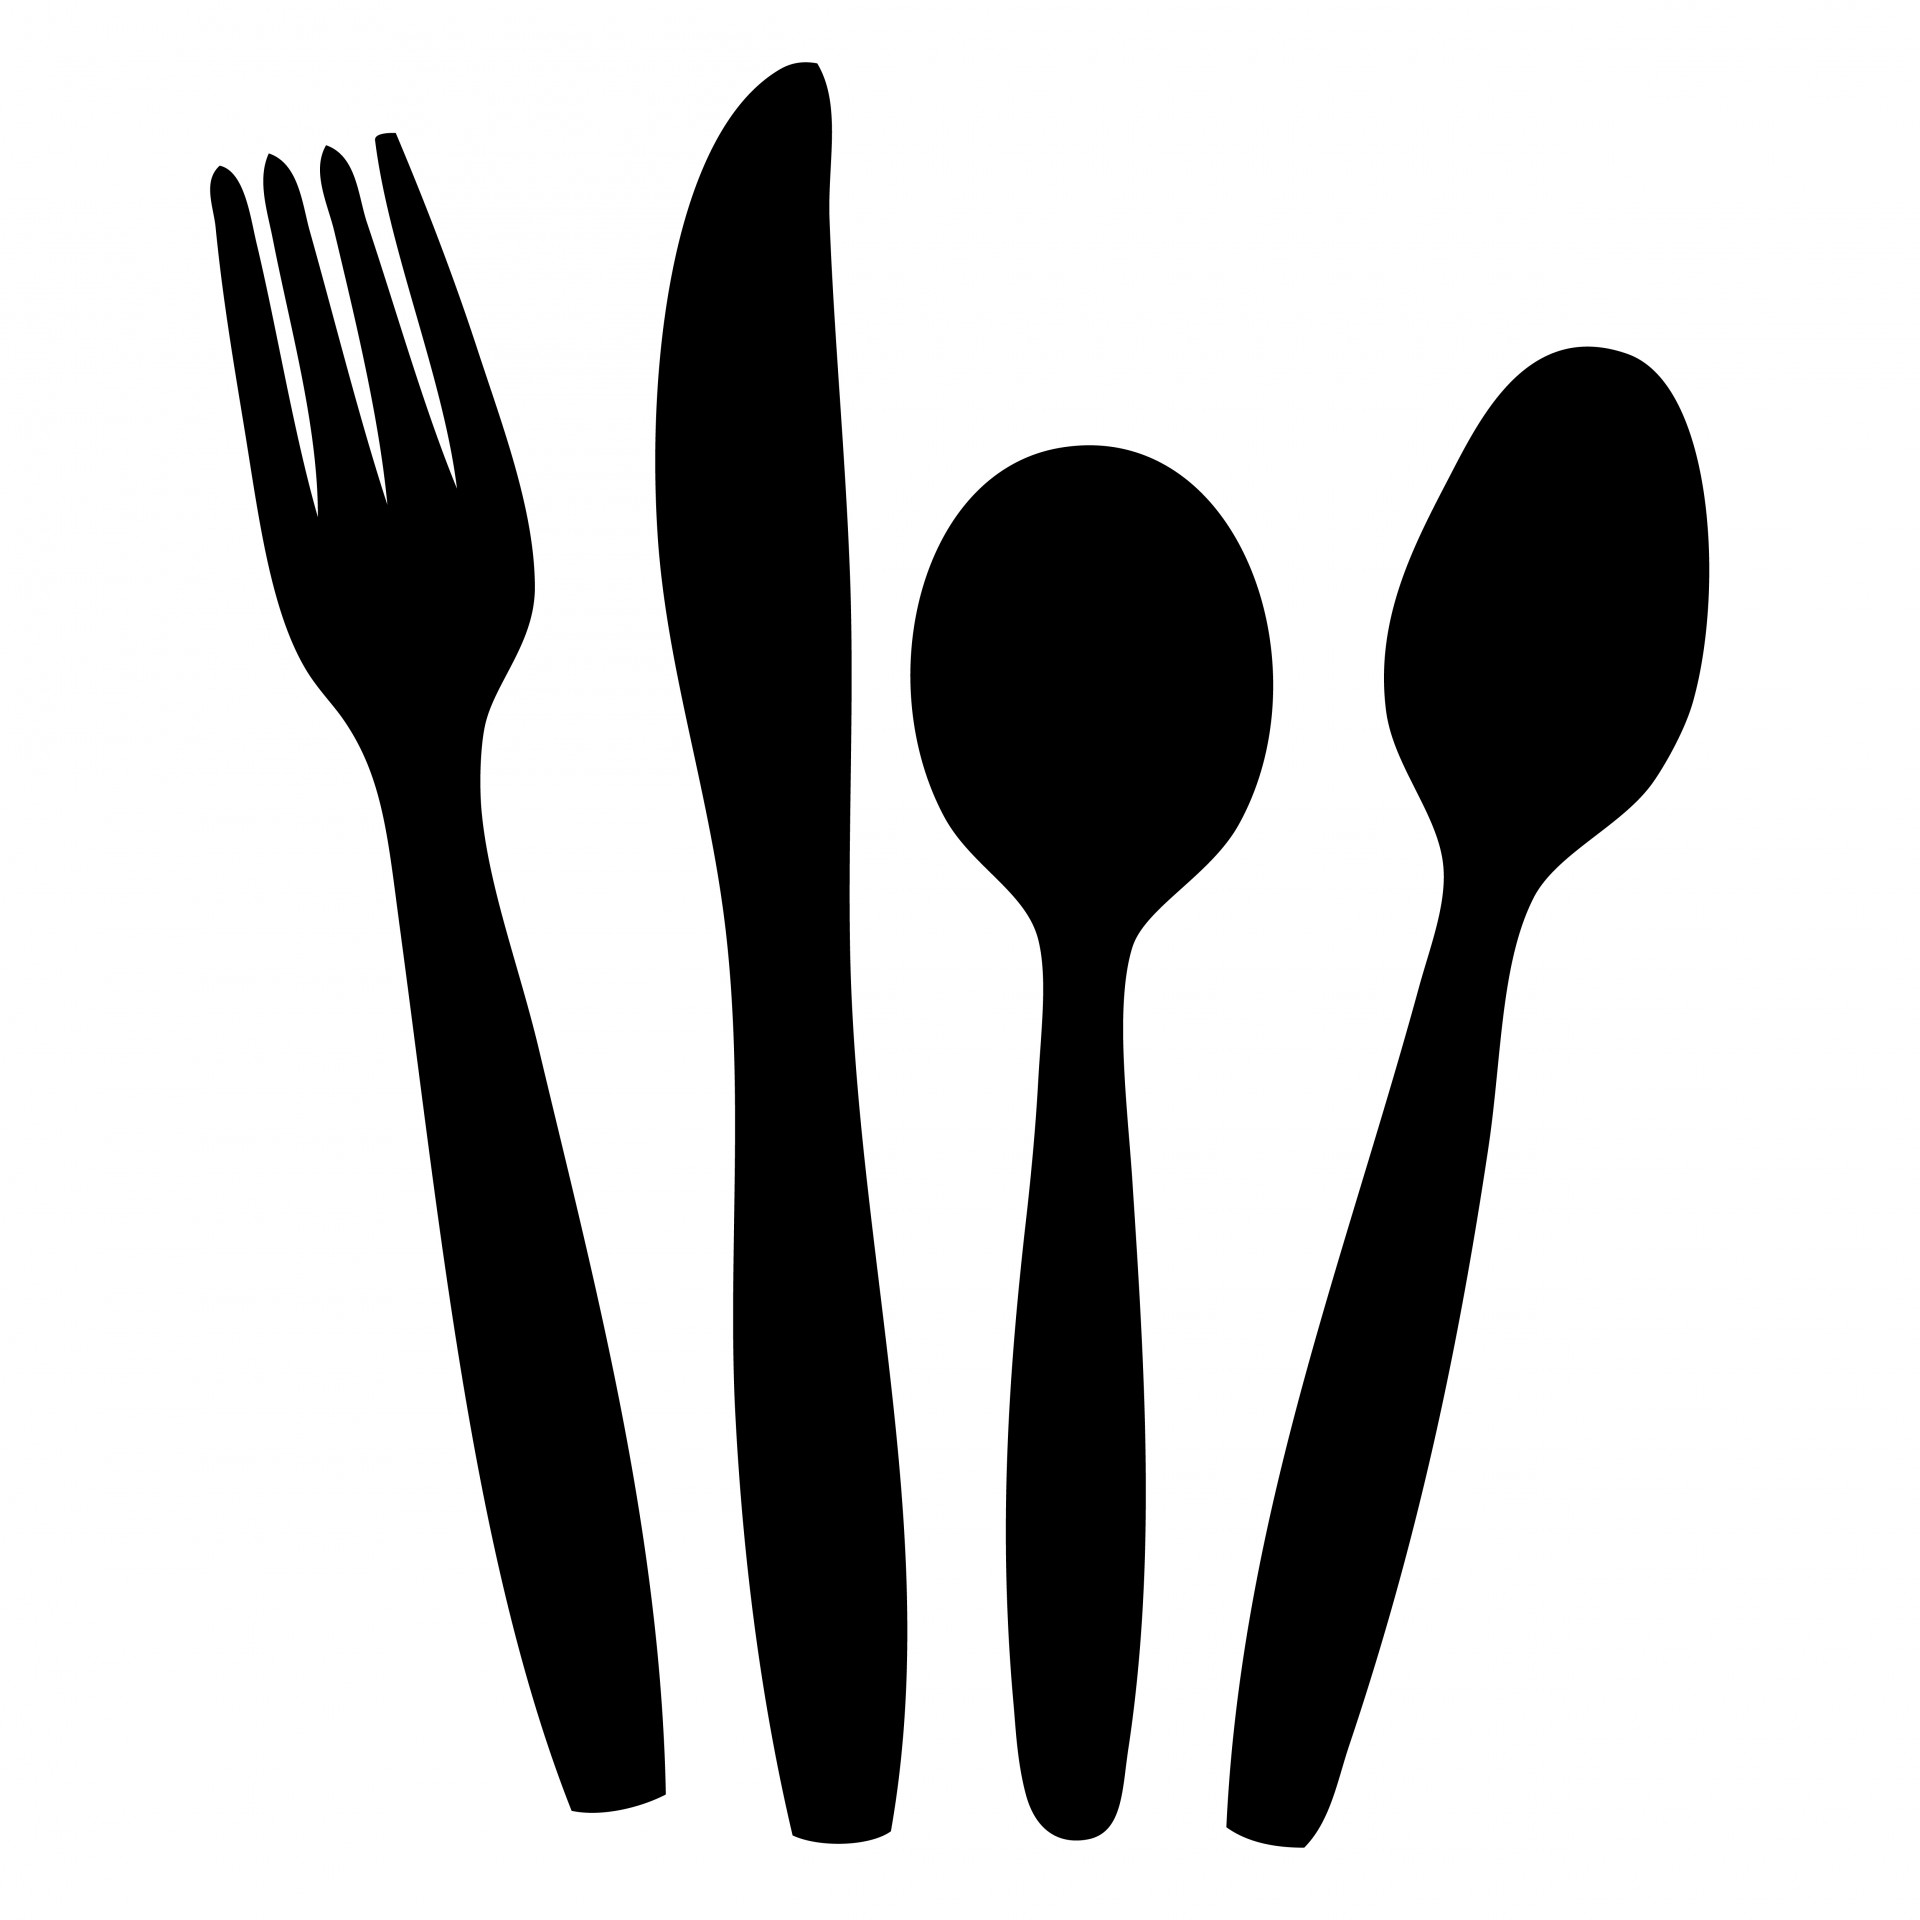 1920x1920 Cutlery Black Silhouette Clipart Free Stock Photo